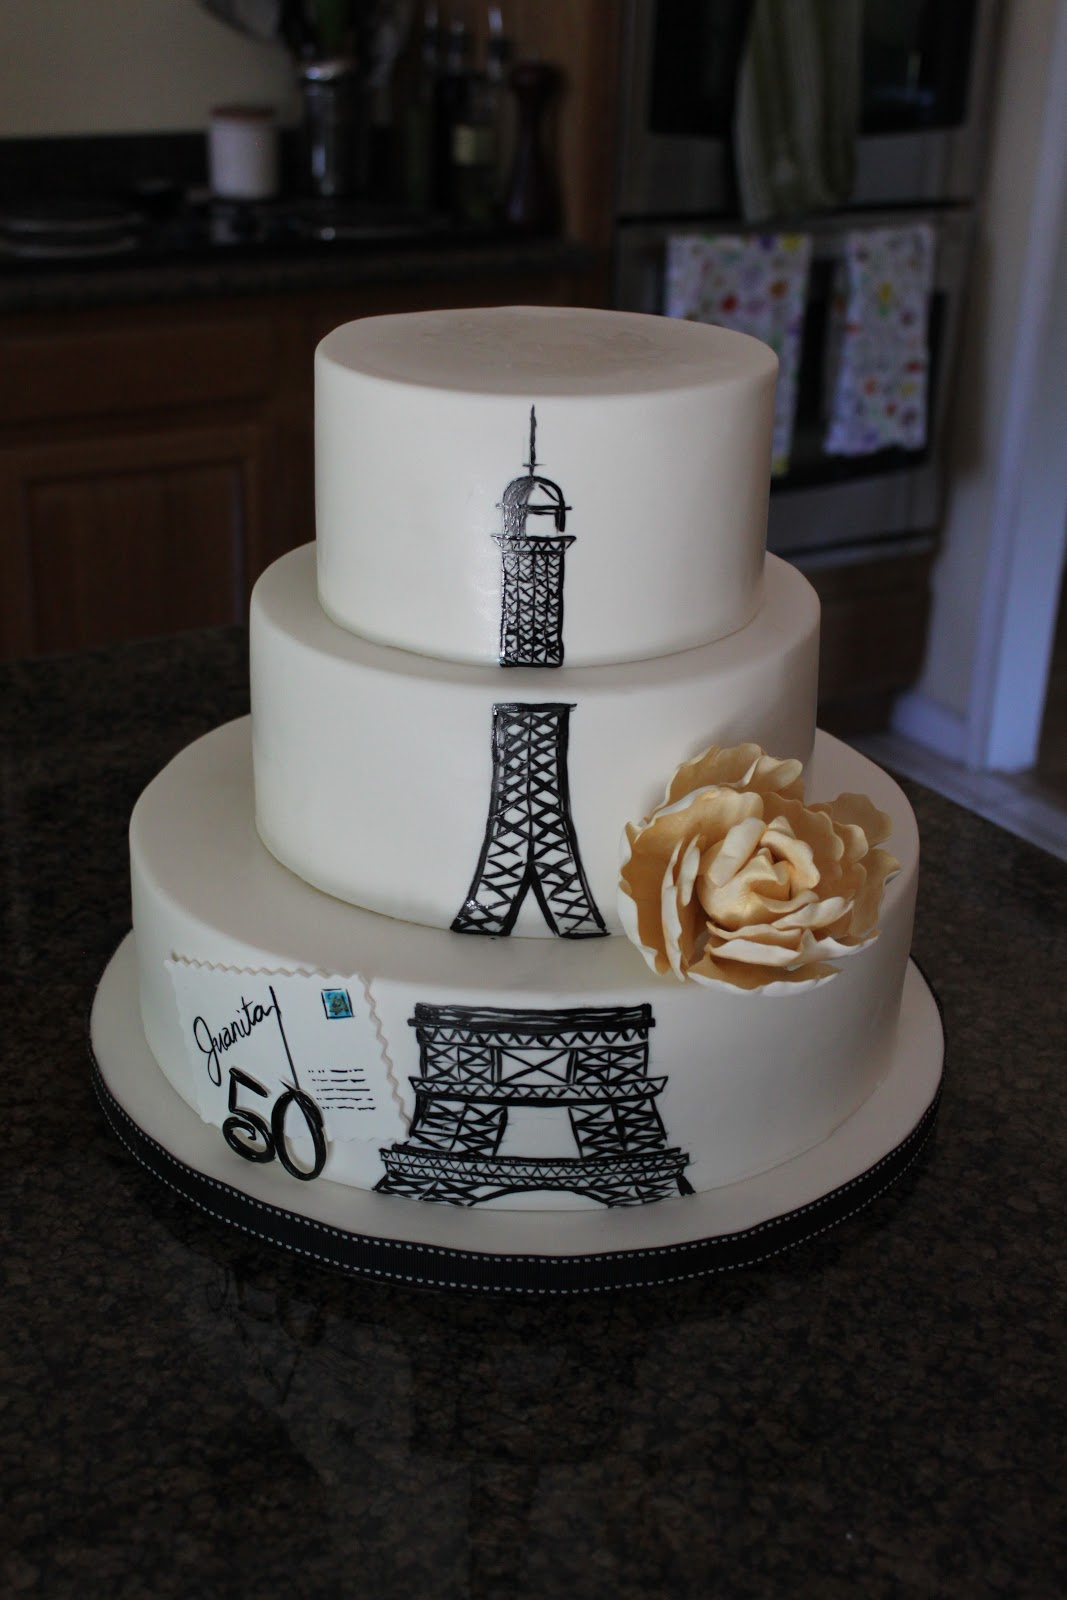 Eiffel Tower Themed Cake | Just The Frosting